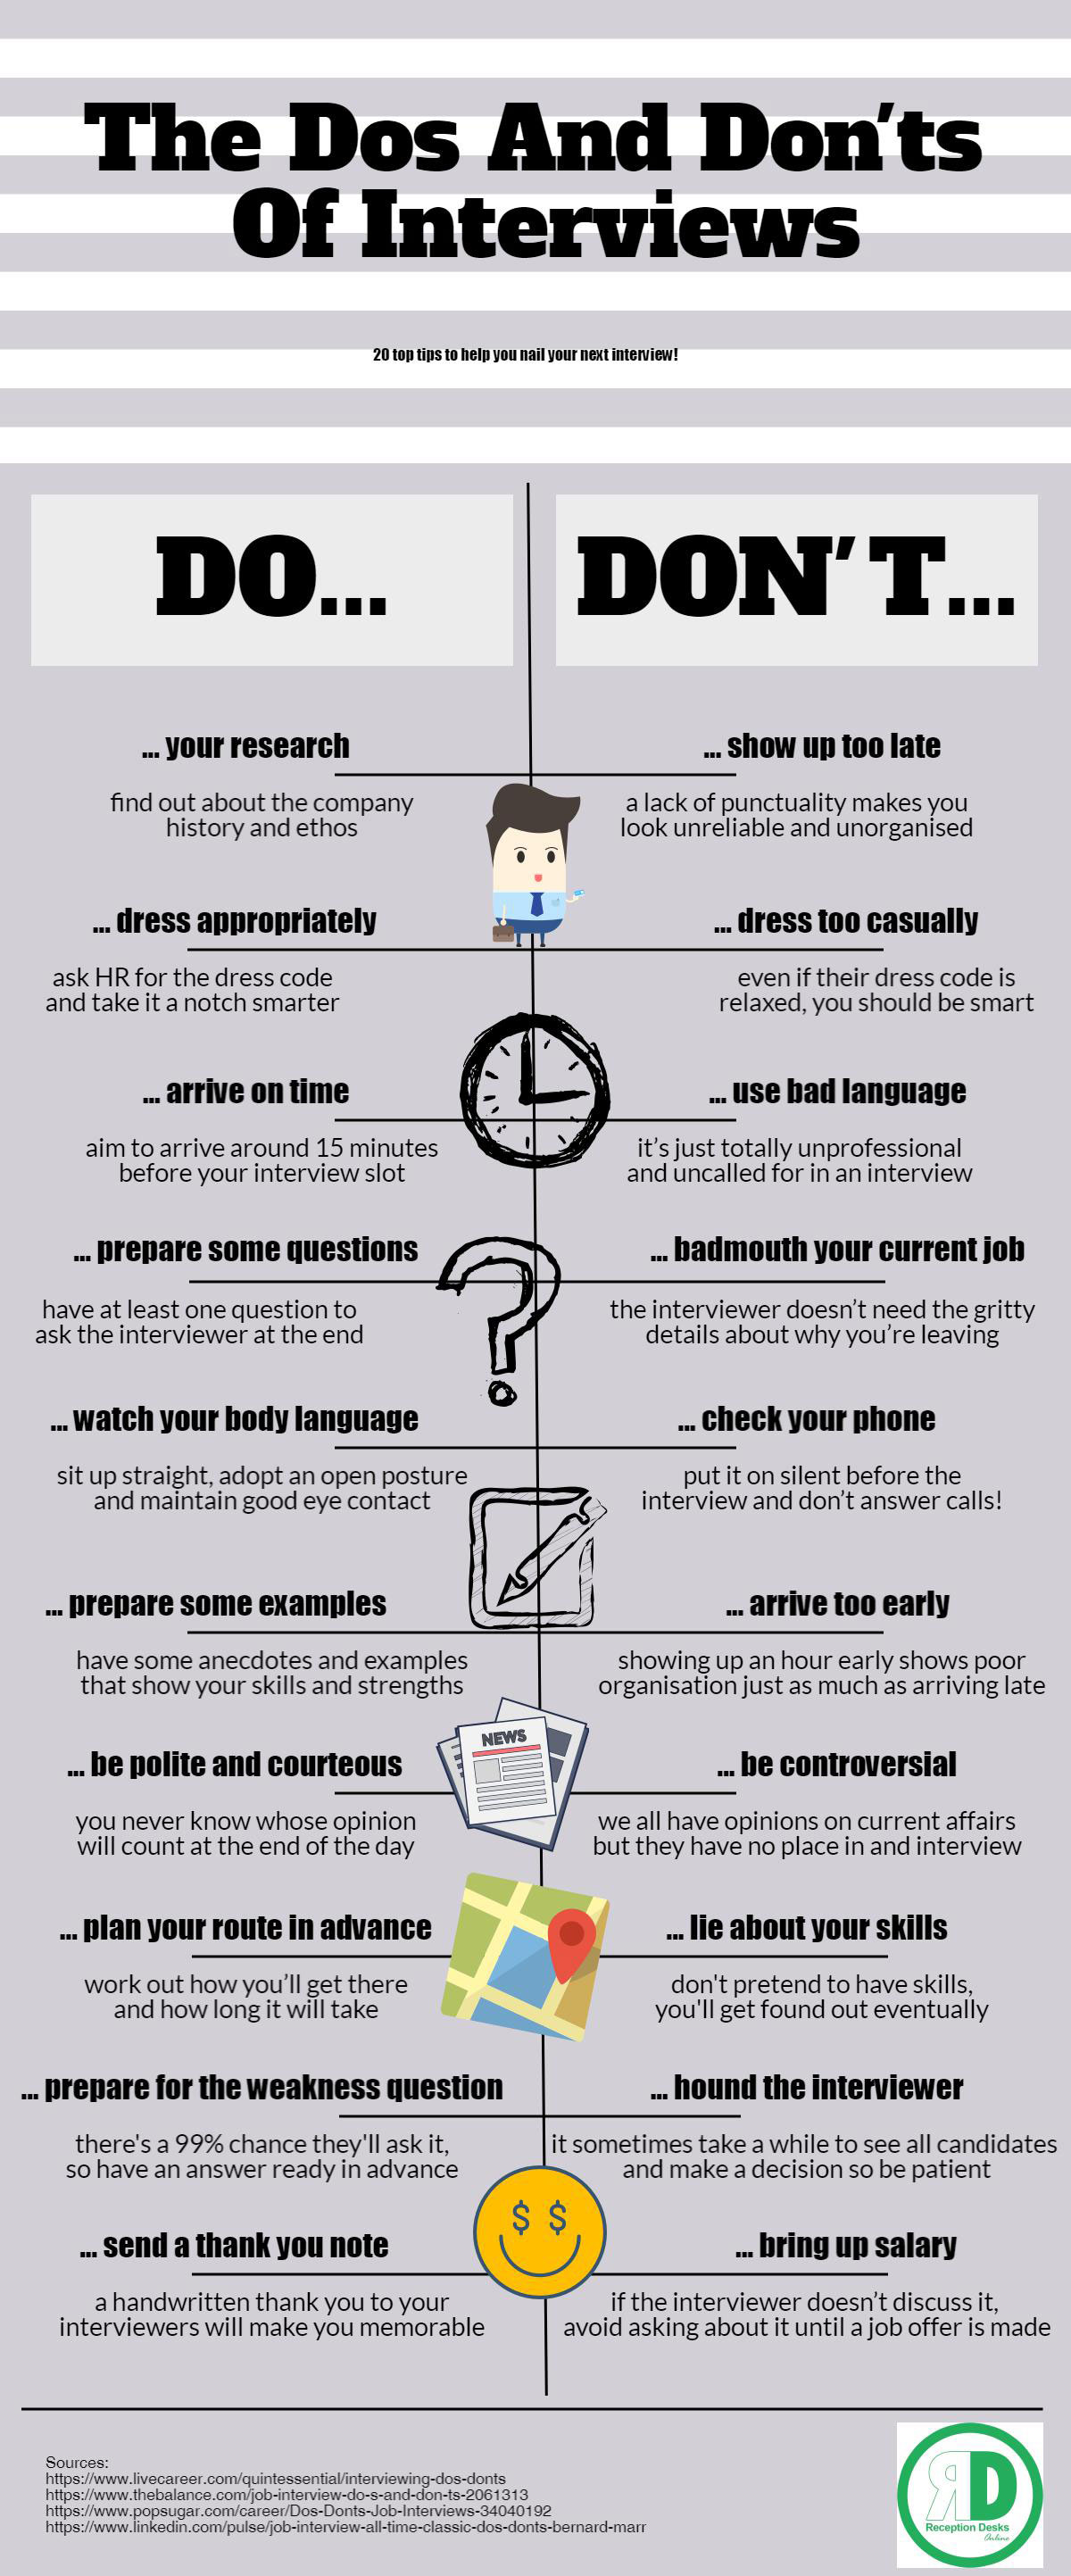 20 Do's and Don'ts of Interviewing